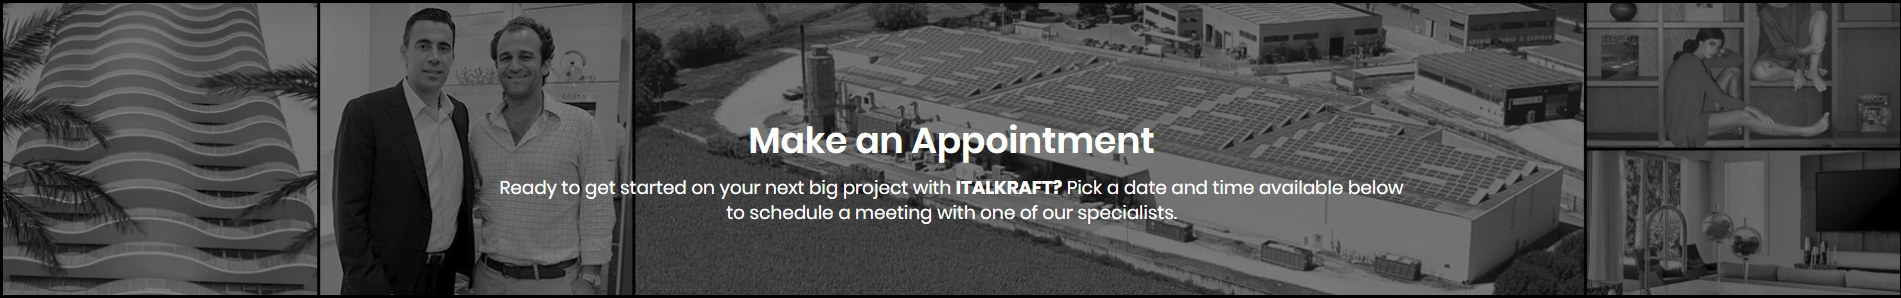 make an appointment italkraft nyc